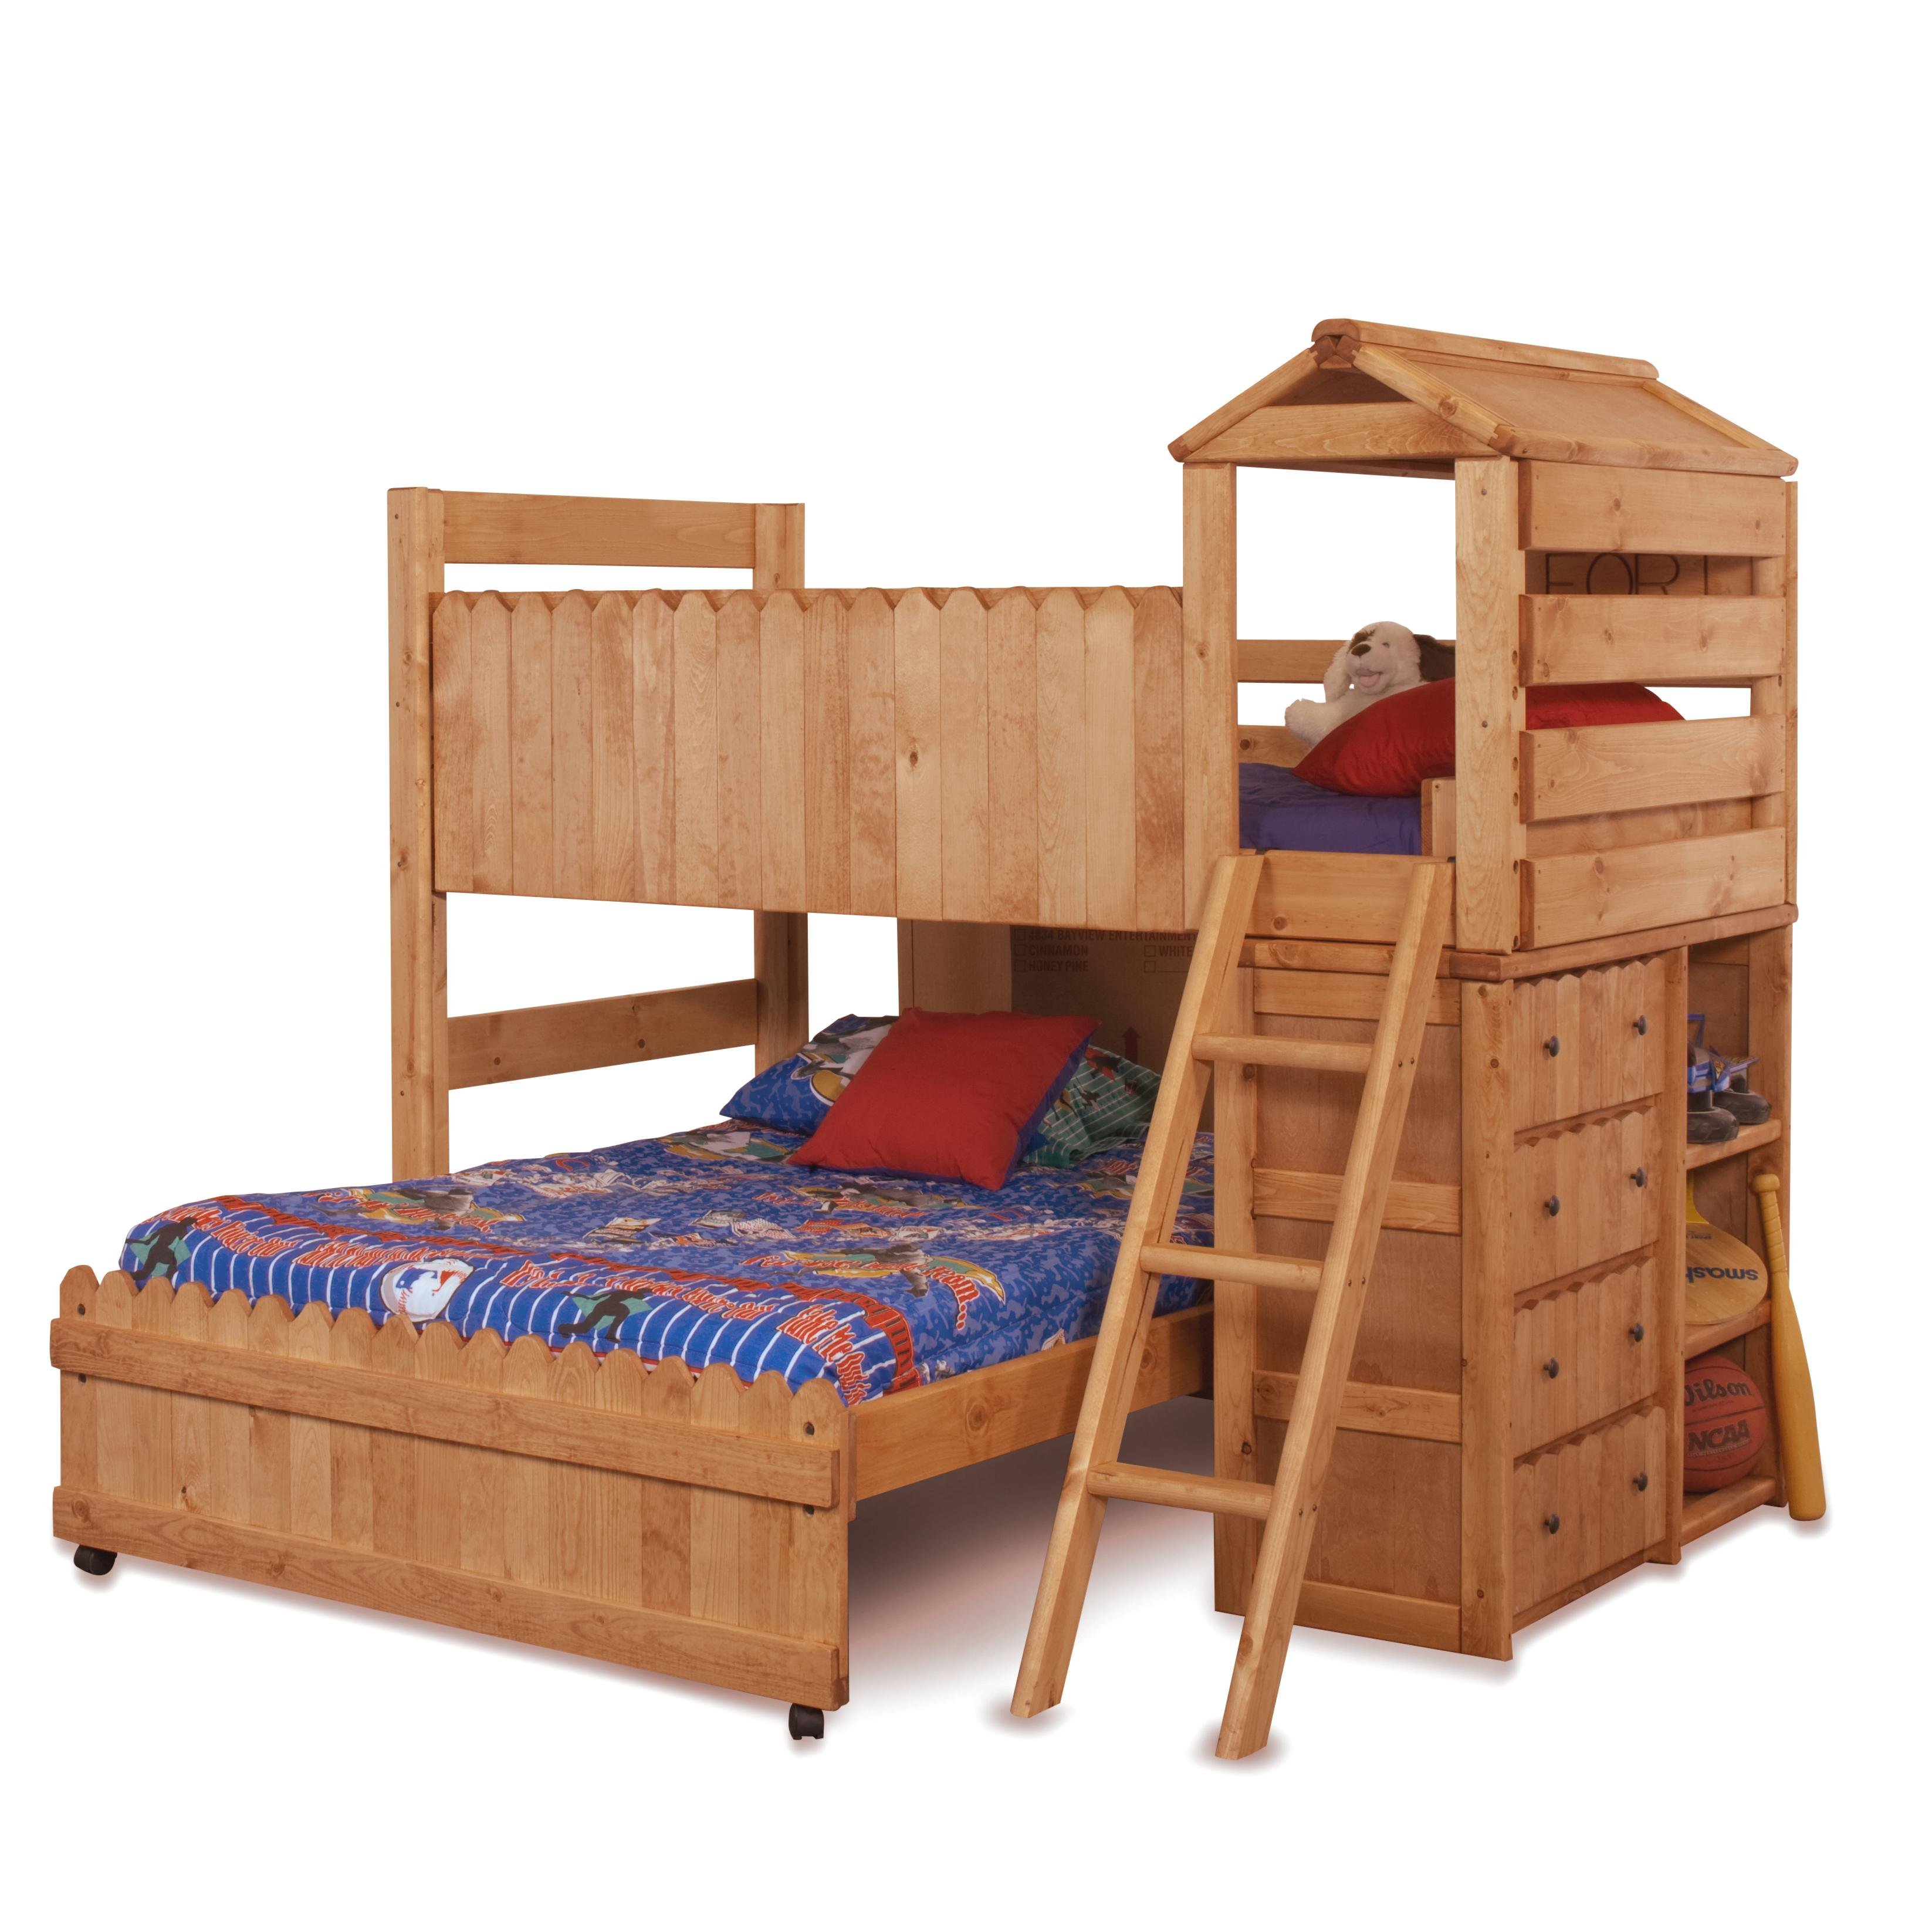 68 Best Images About Loft Beds On Pinterest: Trendwood The Fort Twin/Full Complete Loft Fort Bed With